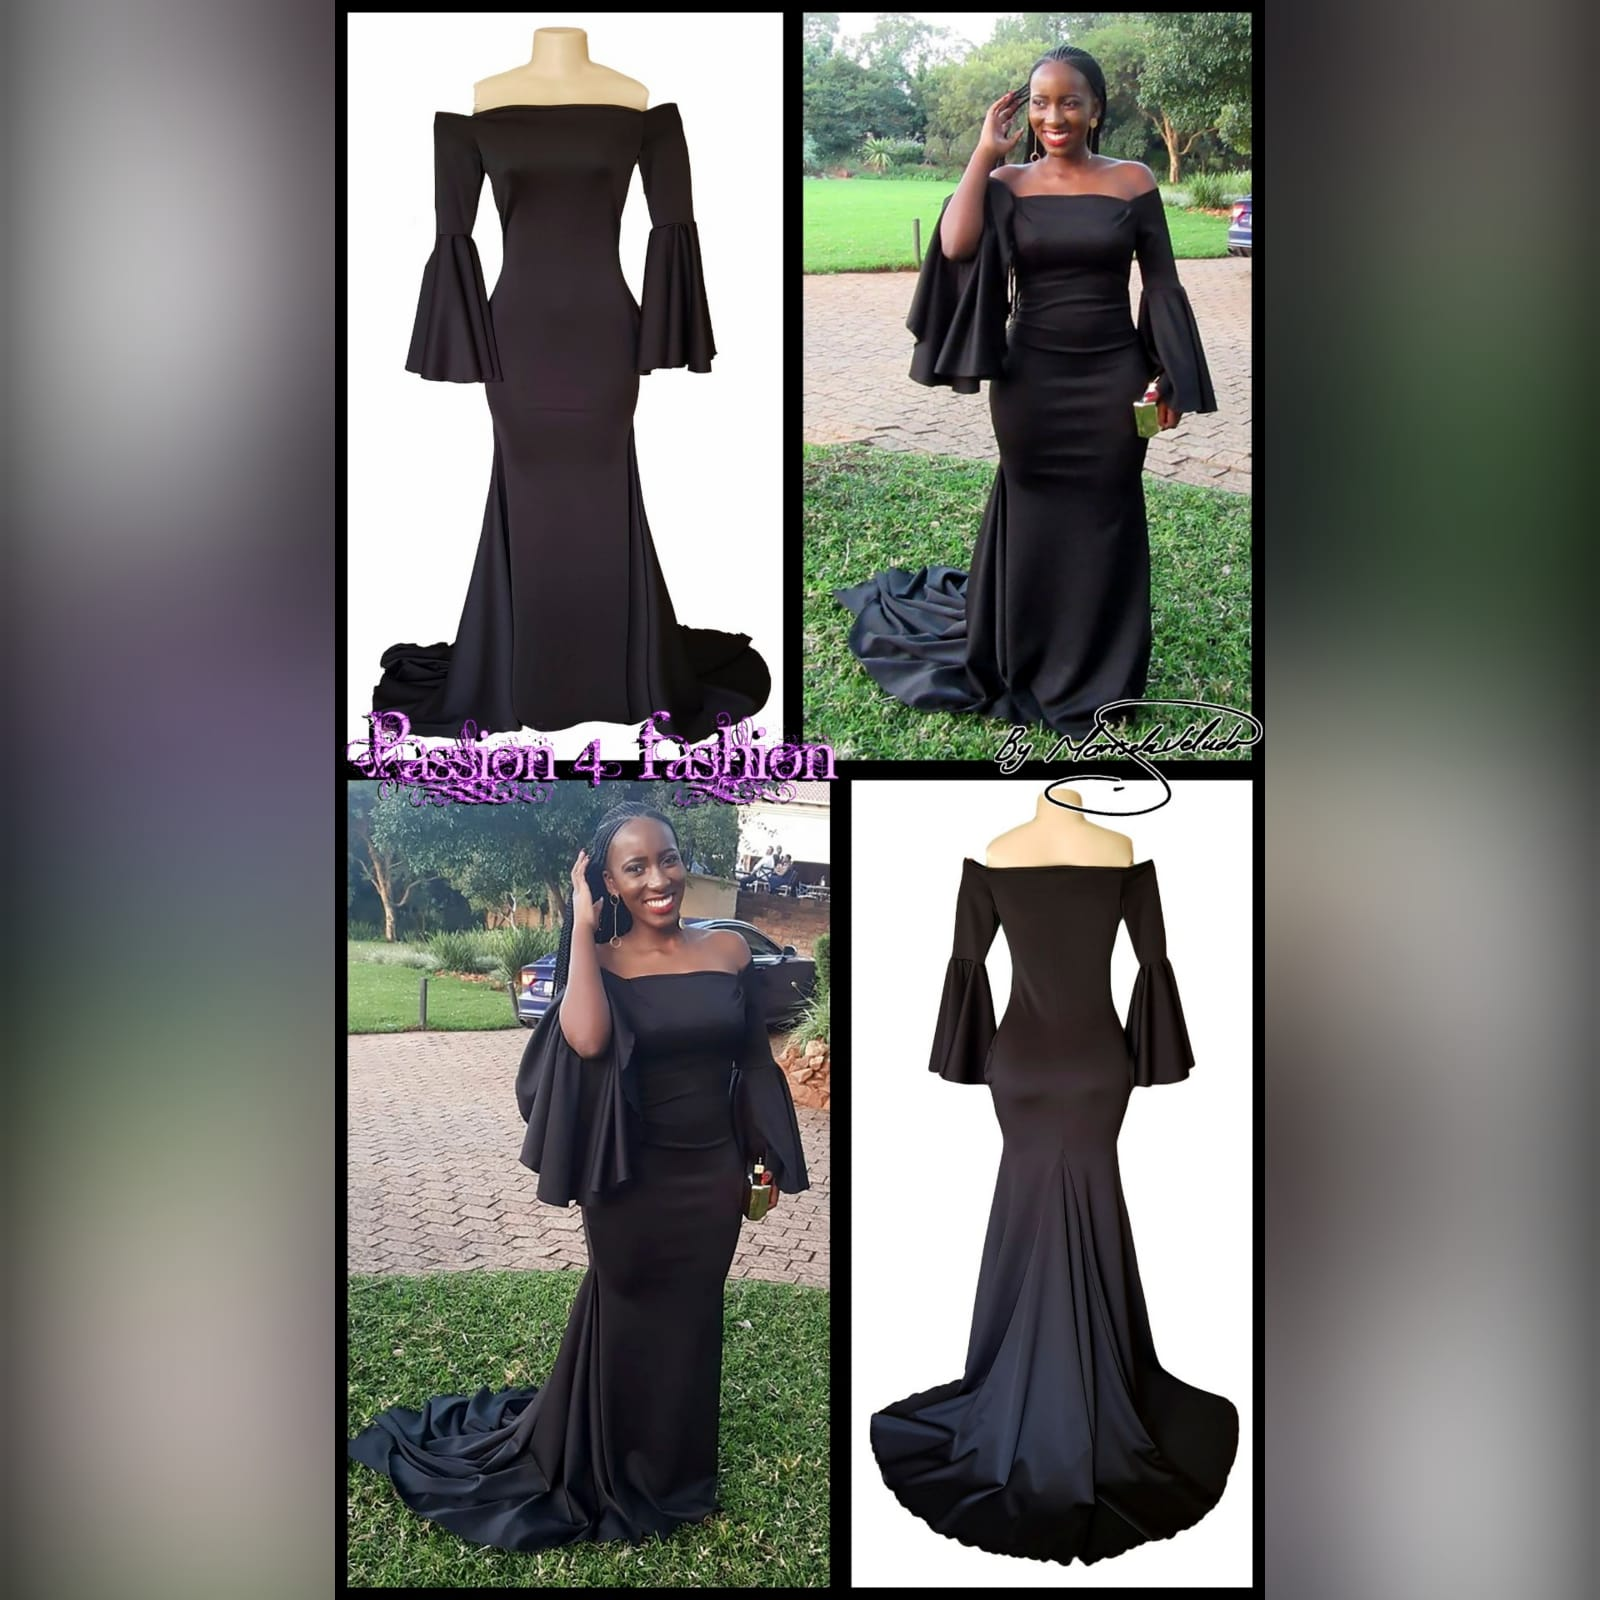 Black off shoulder boob tube matric farewell dress 5 black off shoulder boob tube matric farewell dress with bell long sleeves in a soft mermaid, with train.